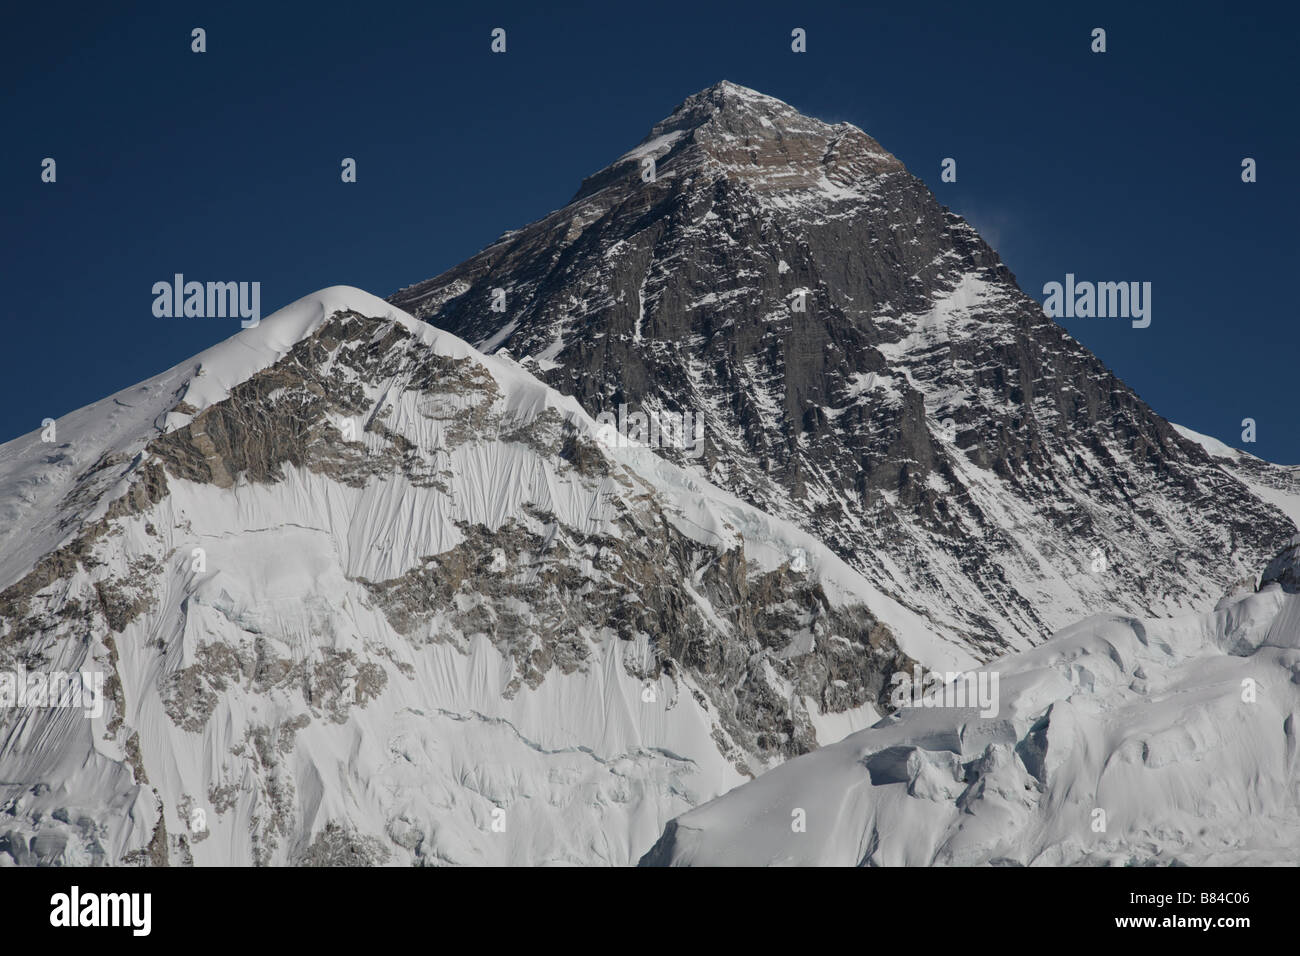 View of the Mount Everest from the summit of Kala Patthar - Stock Image